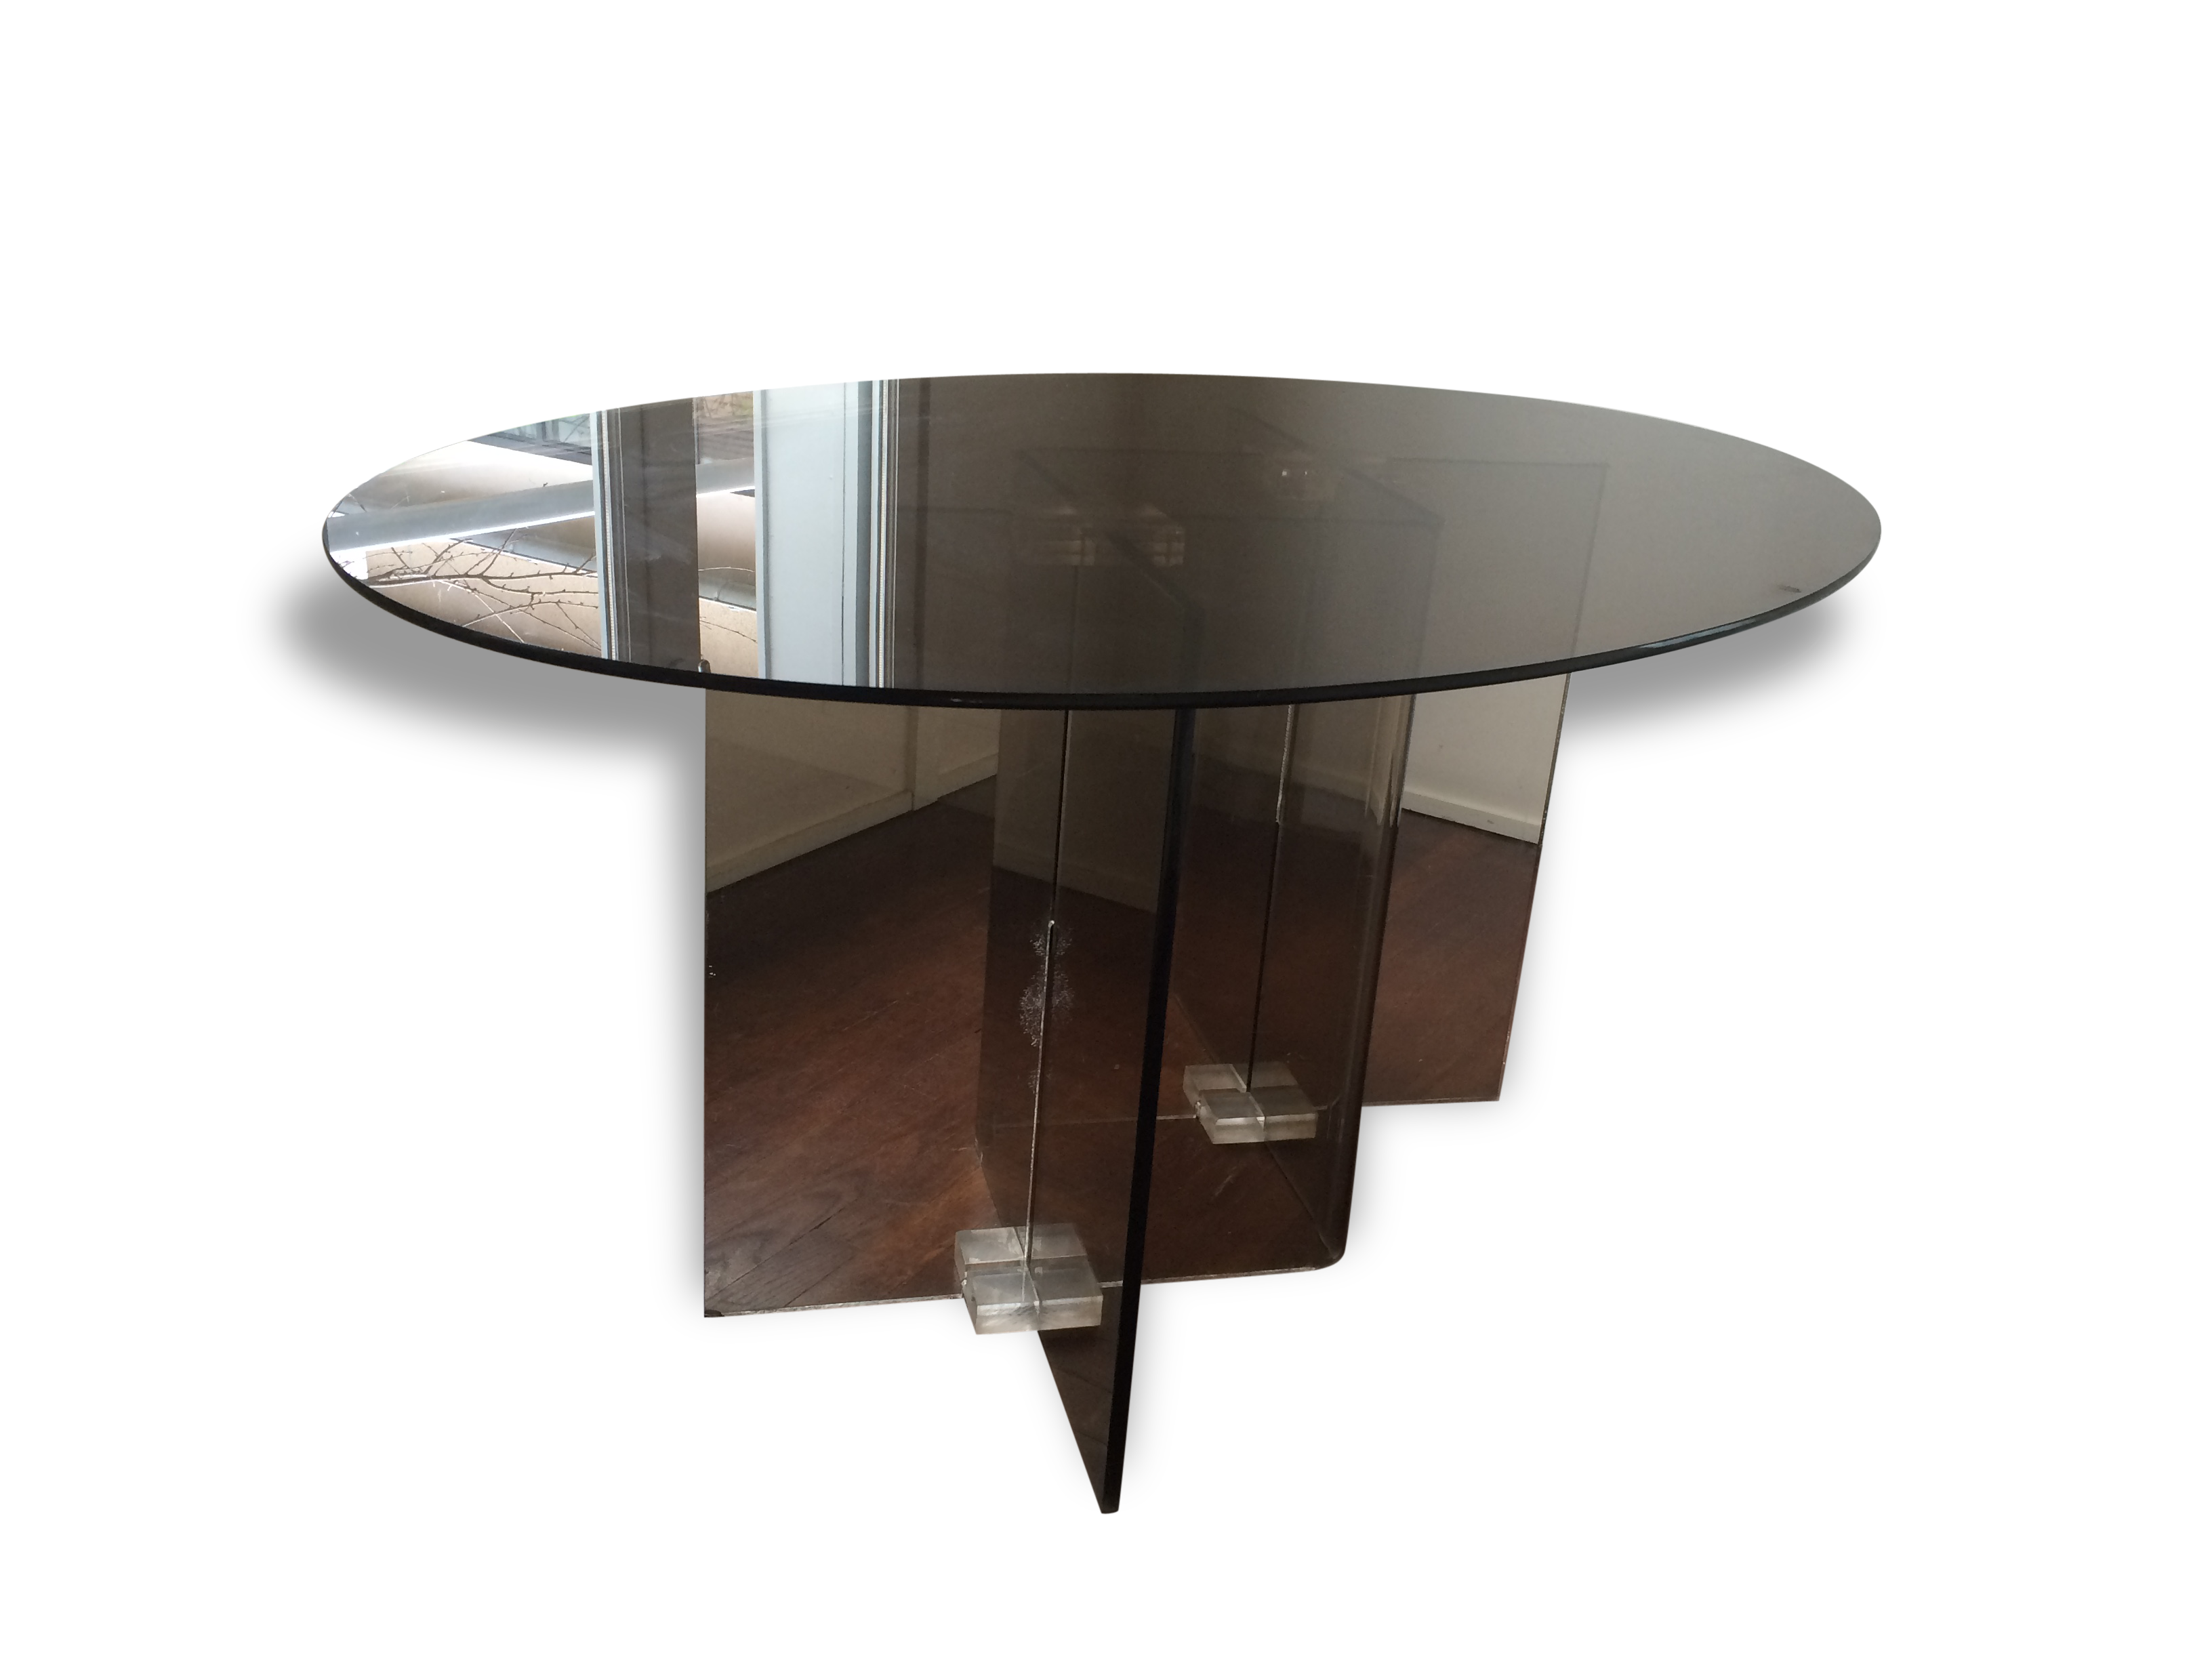 table-roche-bobois-1970-1980-vintage-en-plexi-et-verre_original Unique De Table Basse Plexiglas